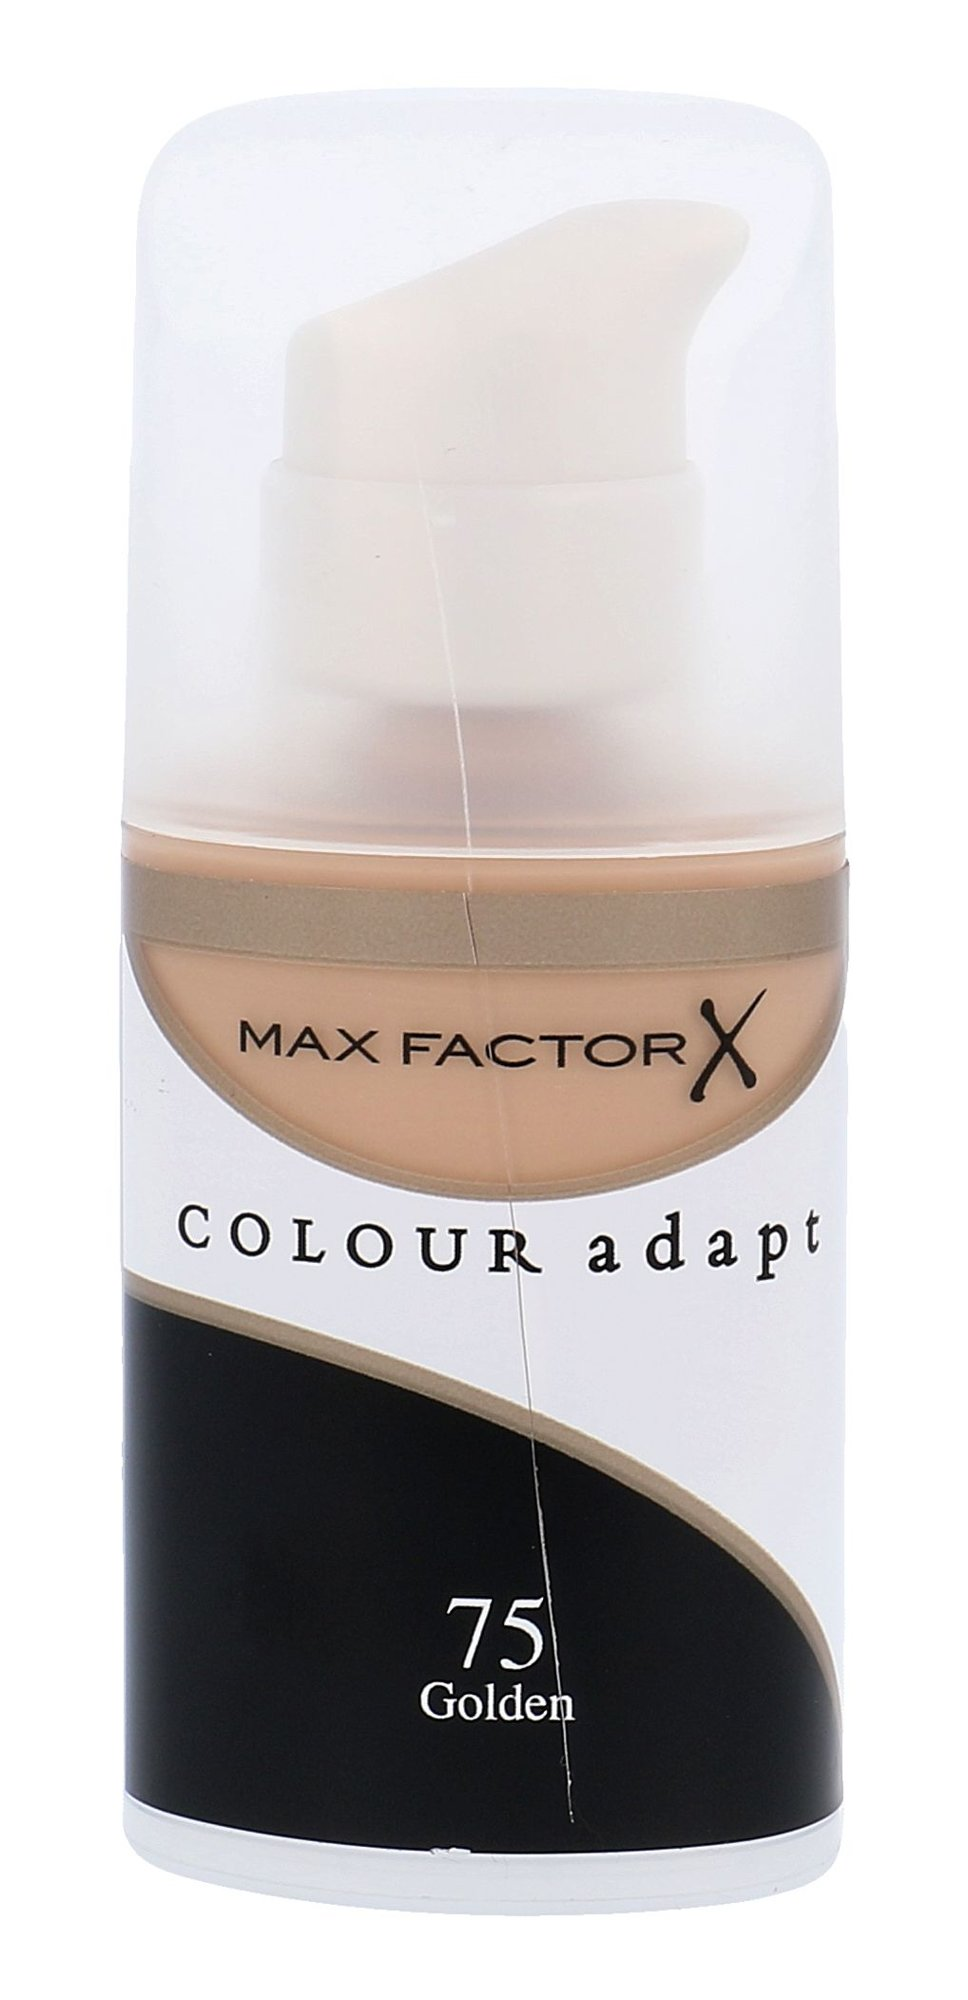 Max Factor Colour Adapt Cosmetic 34ml 75 Golden